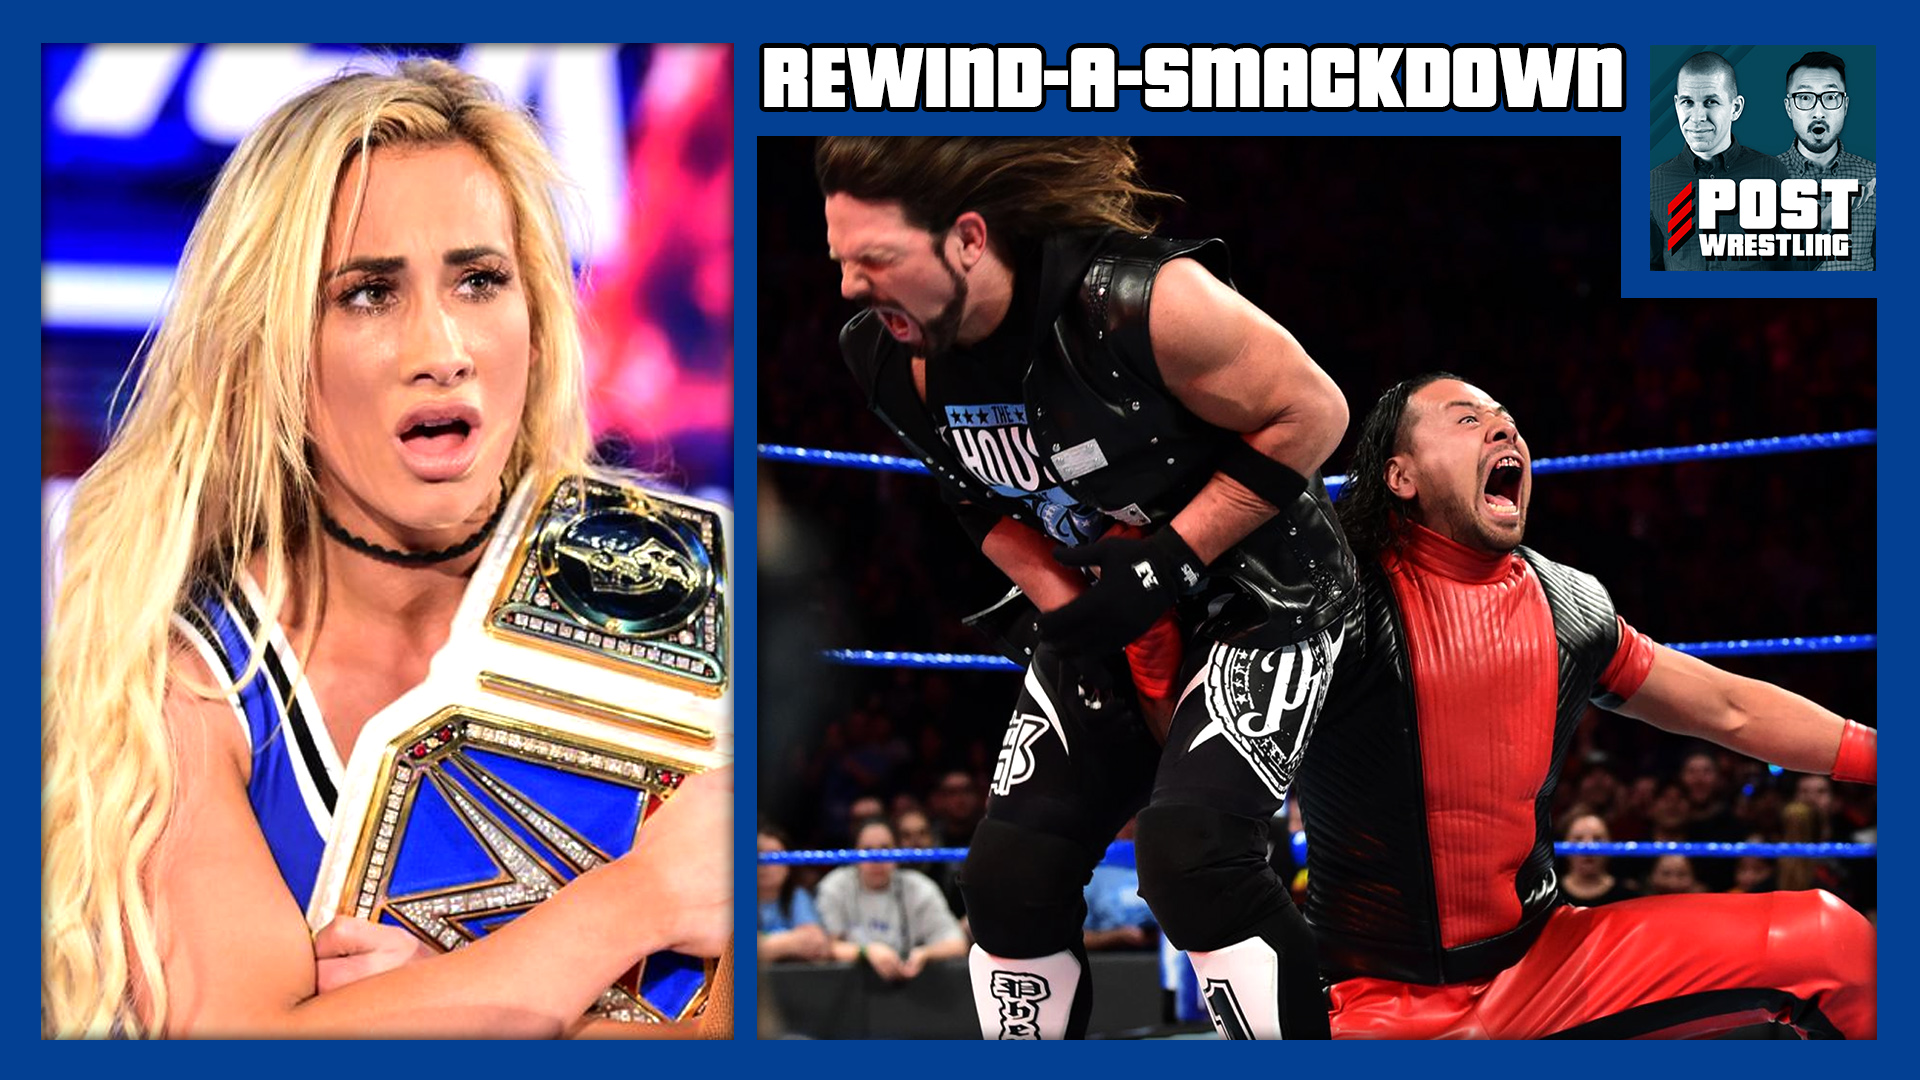 REWIND-A-SMACKDOWN 5/1/18: Backlash Go-Home Show